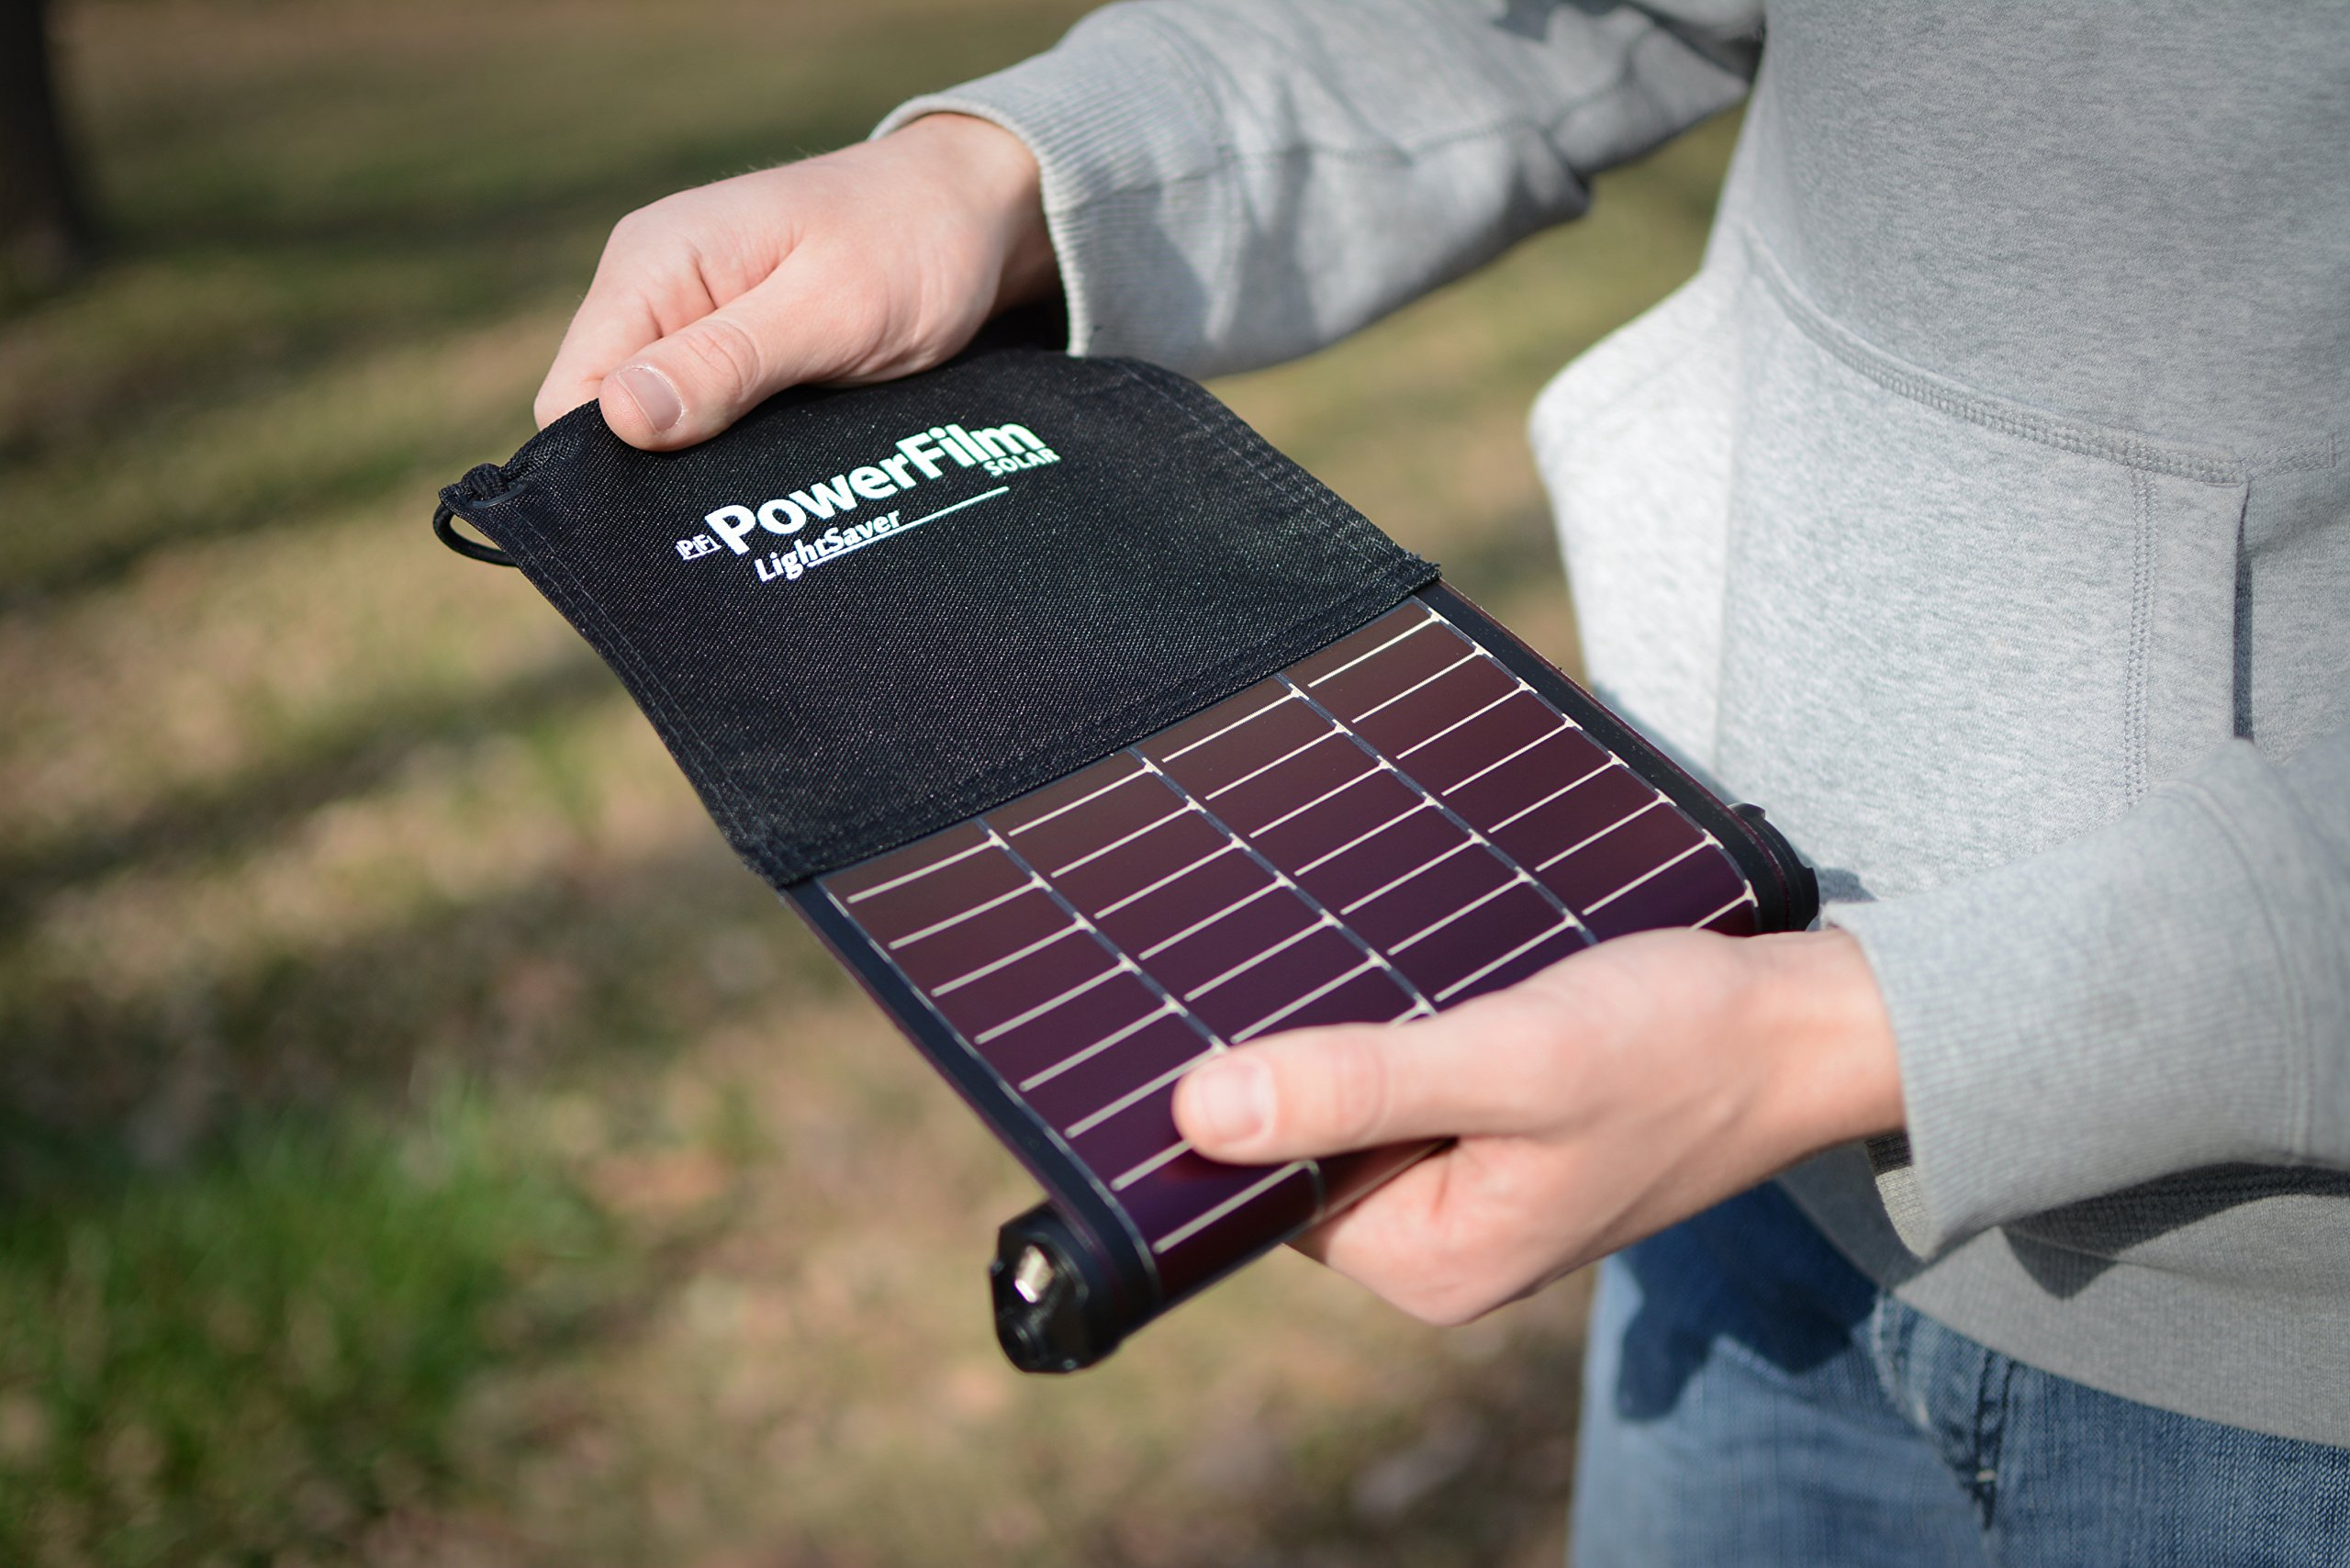 LightSaver USB Roll-up Solar Charger - Battery Bank by PowerFilm Solar